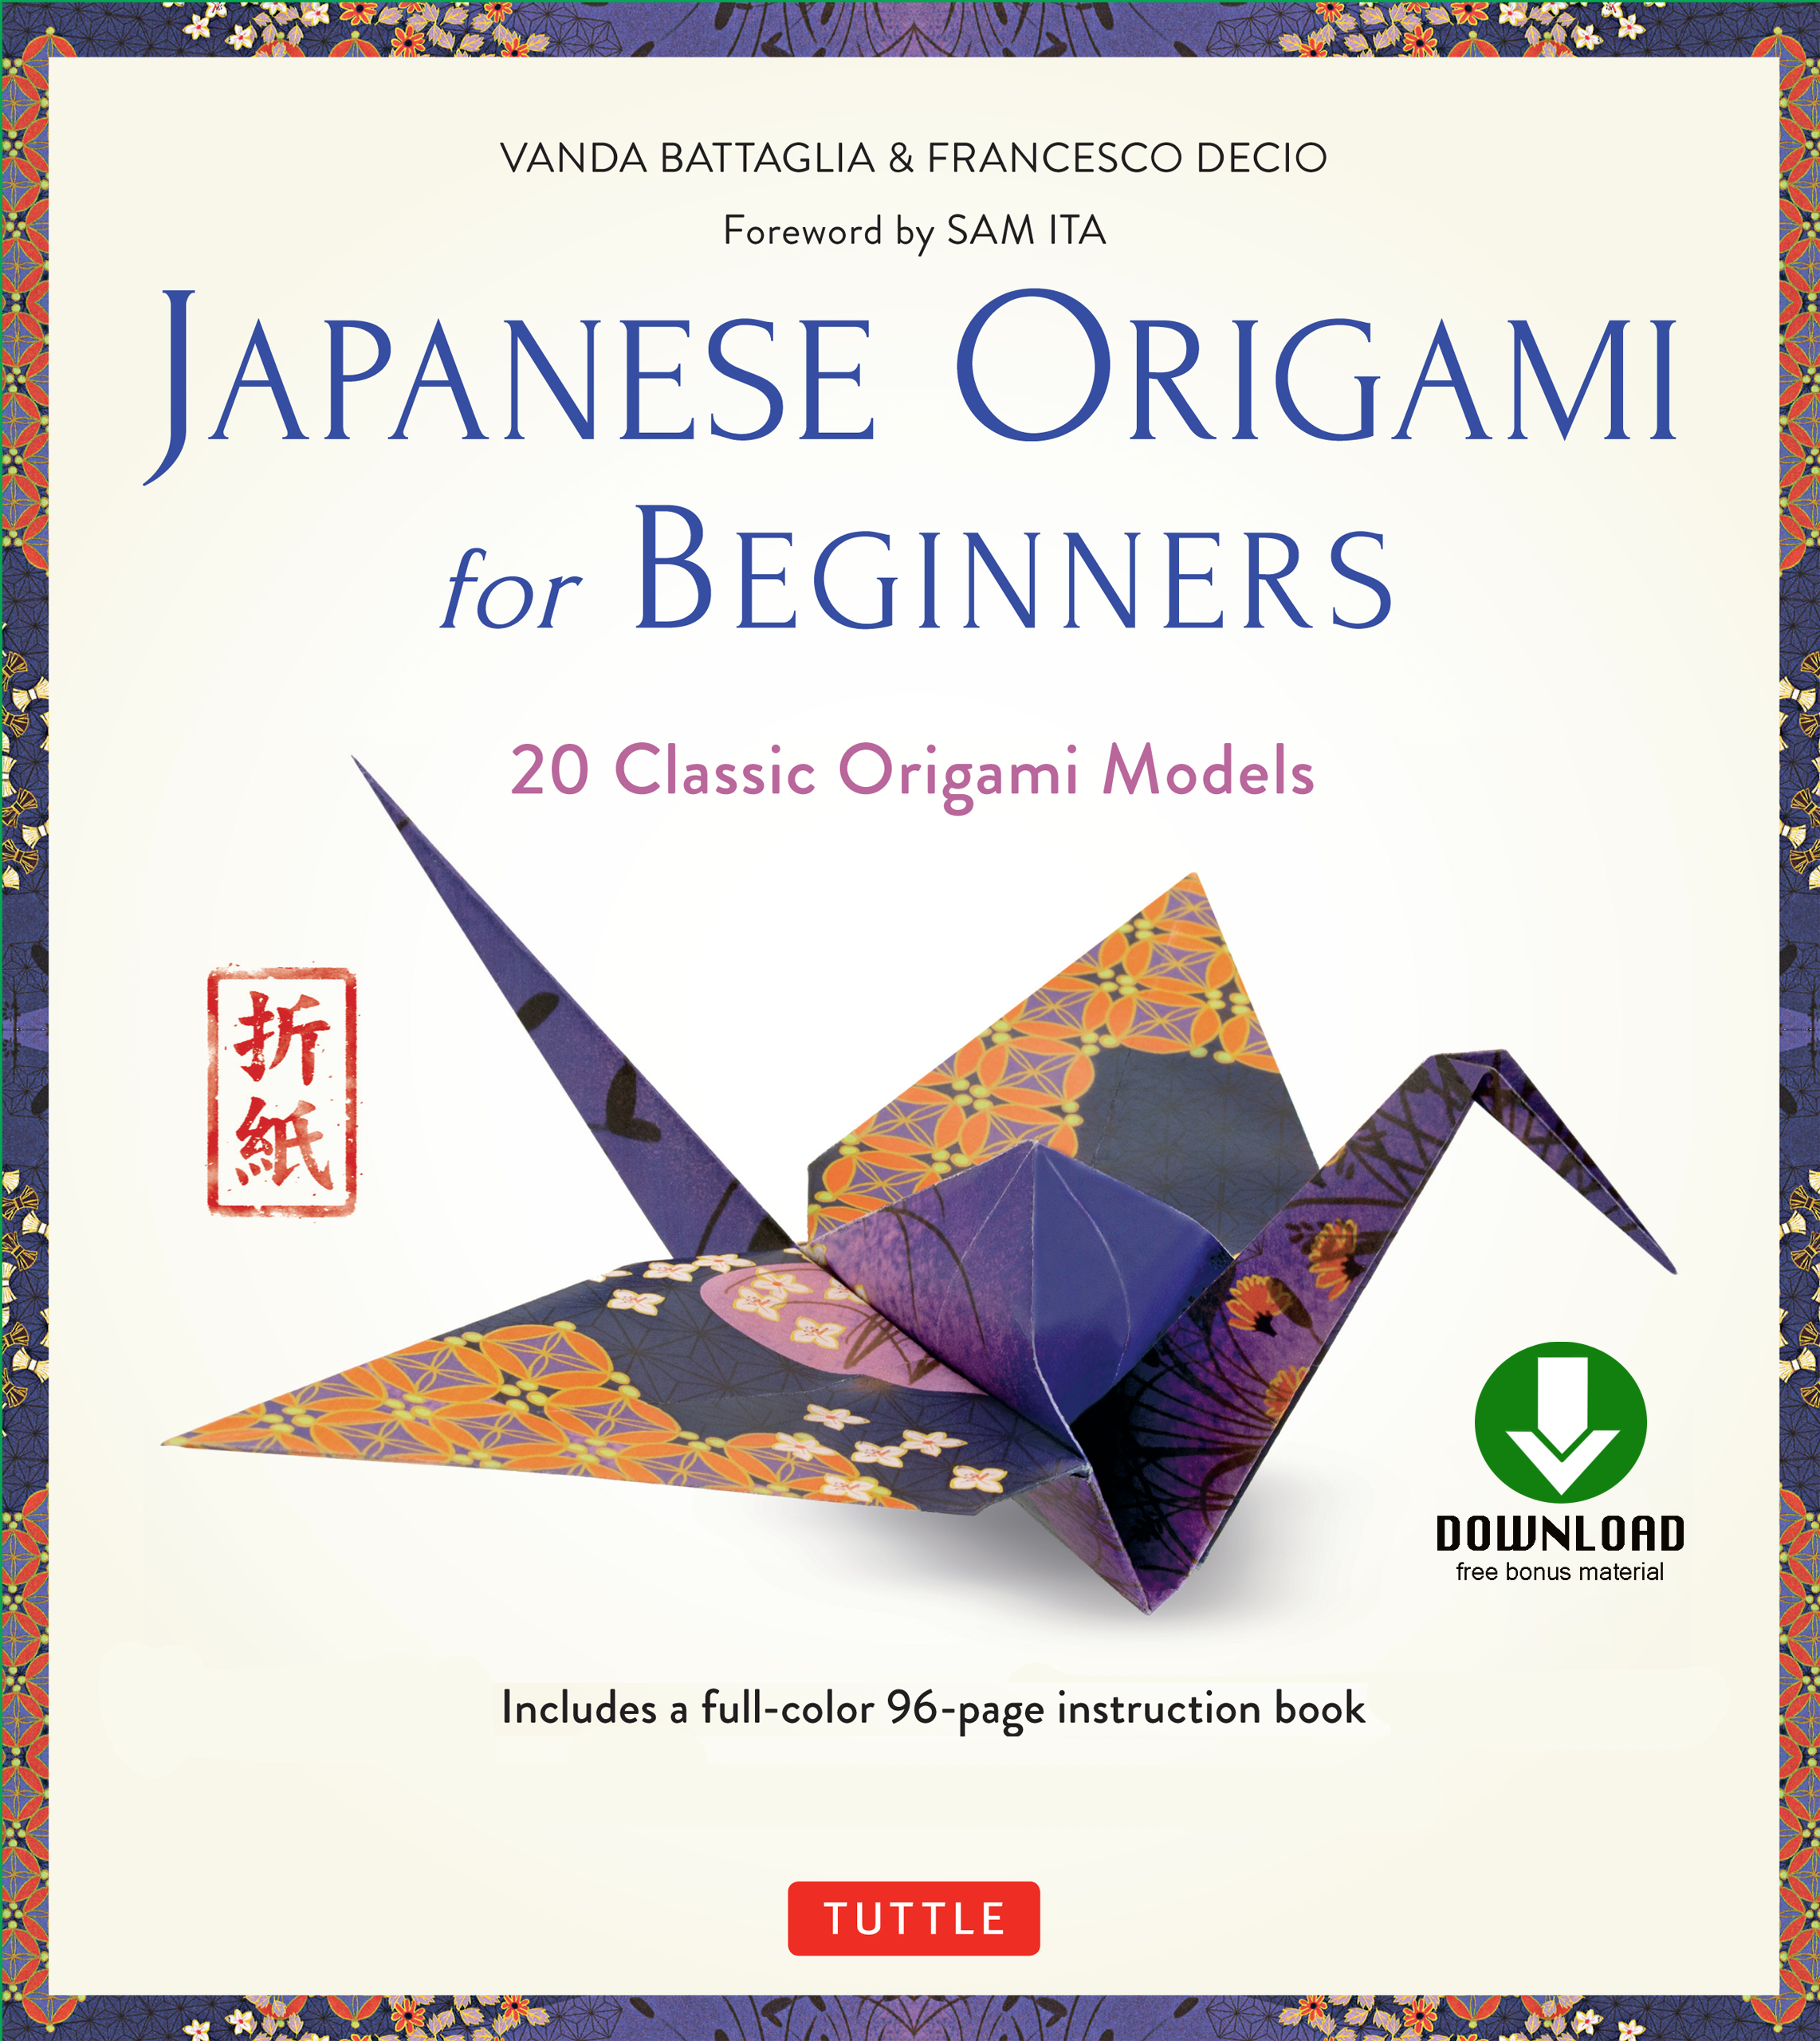 Japanese Origami for Beginners 20 Classic Origami Models (Downloadable Material)